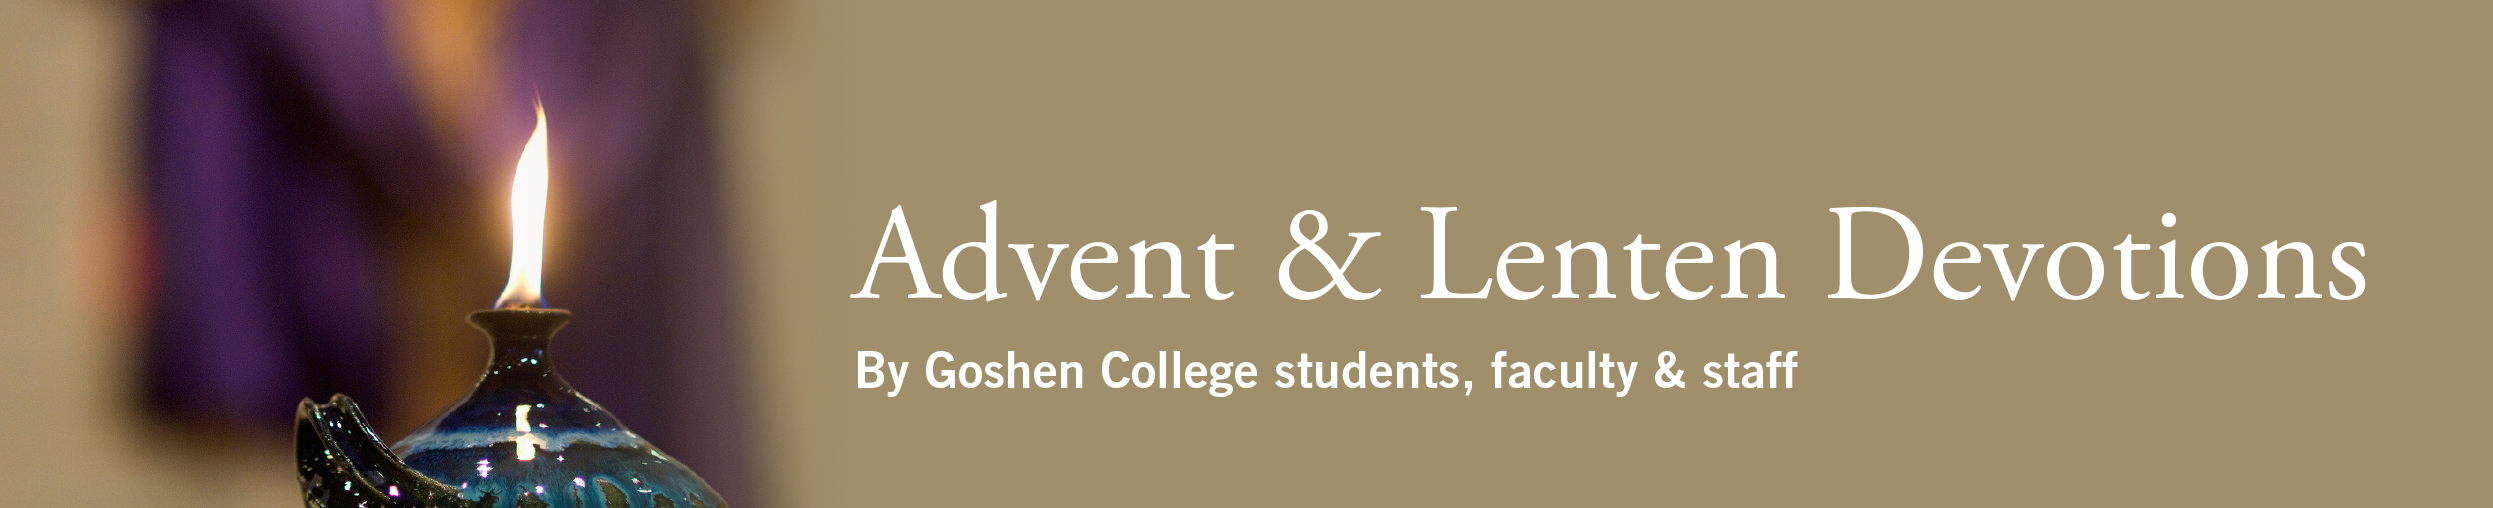 Advent & Lenten Devotions By Goshen College students, faculty & staff